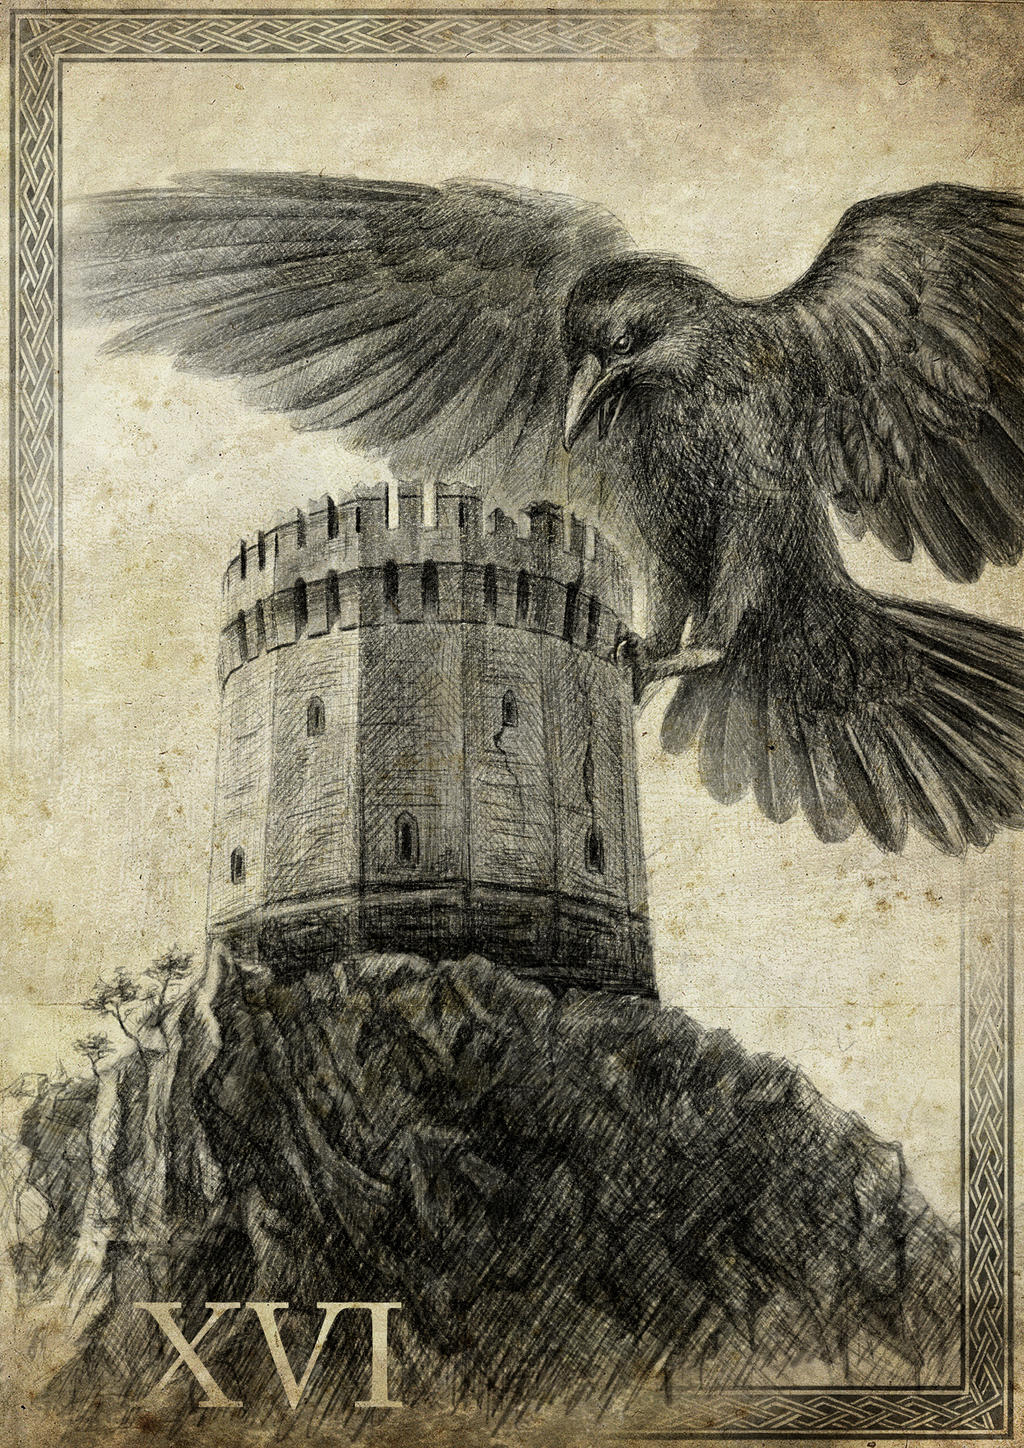 Tarot - XVI. The Tower by IntoTheBear